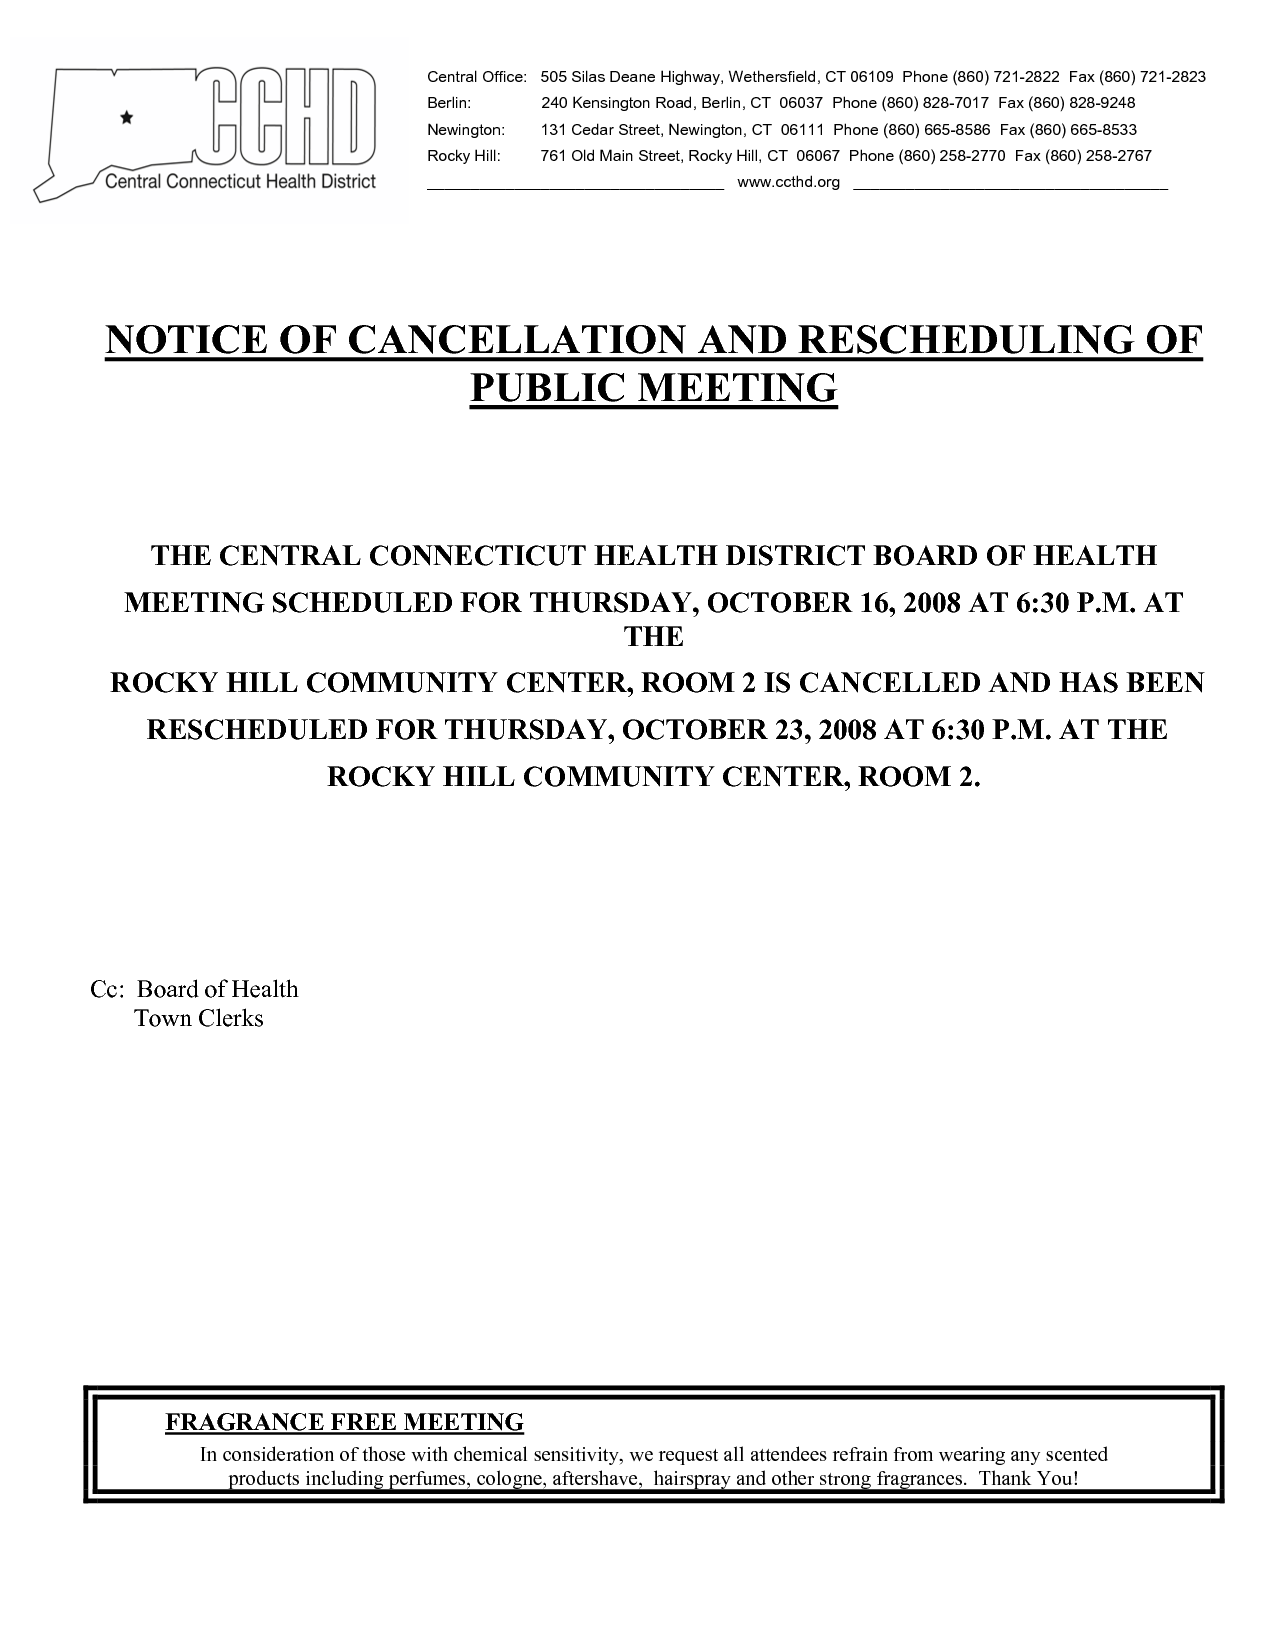 meeting notice samples